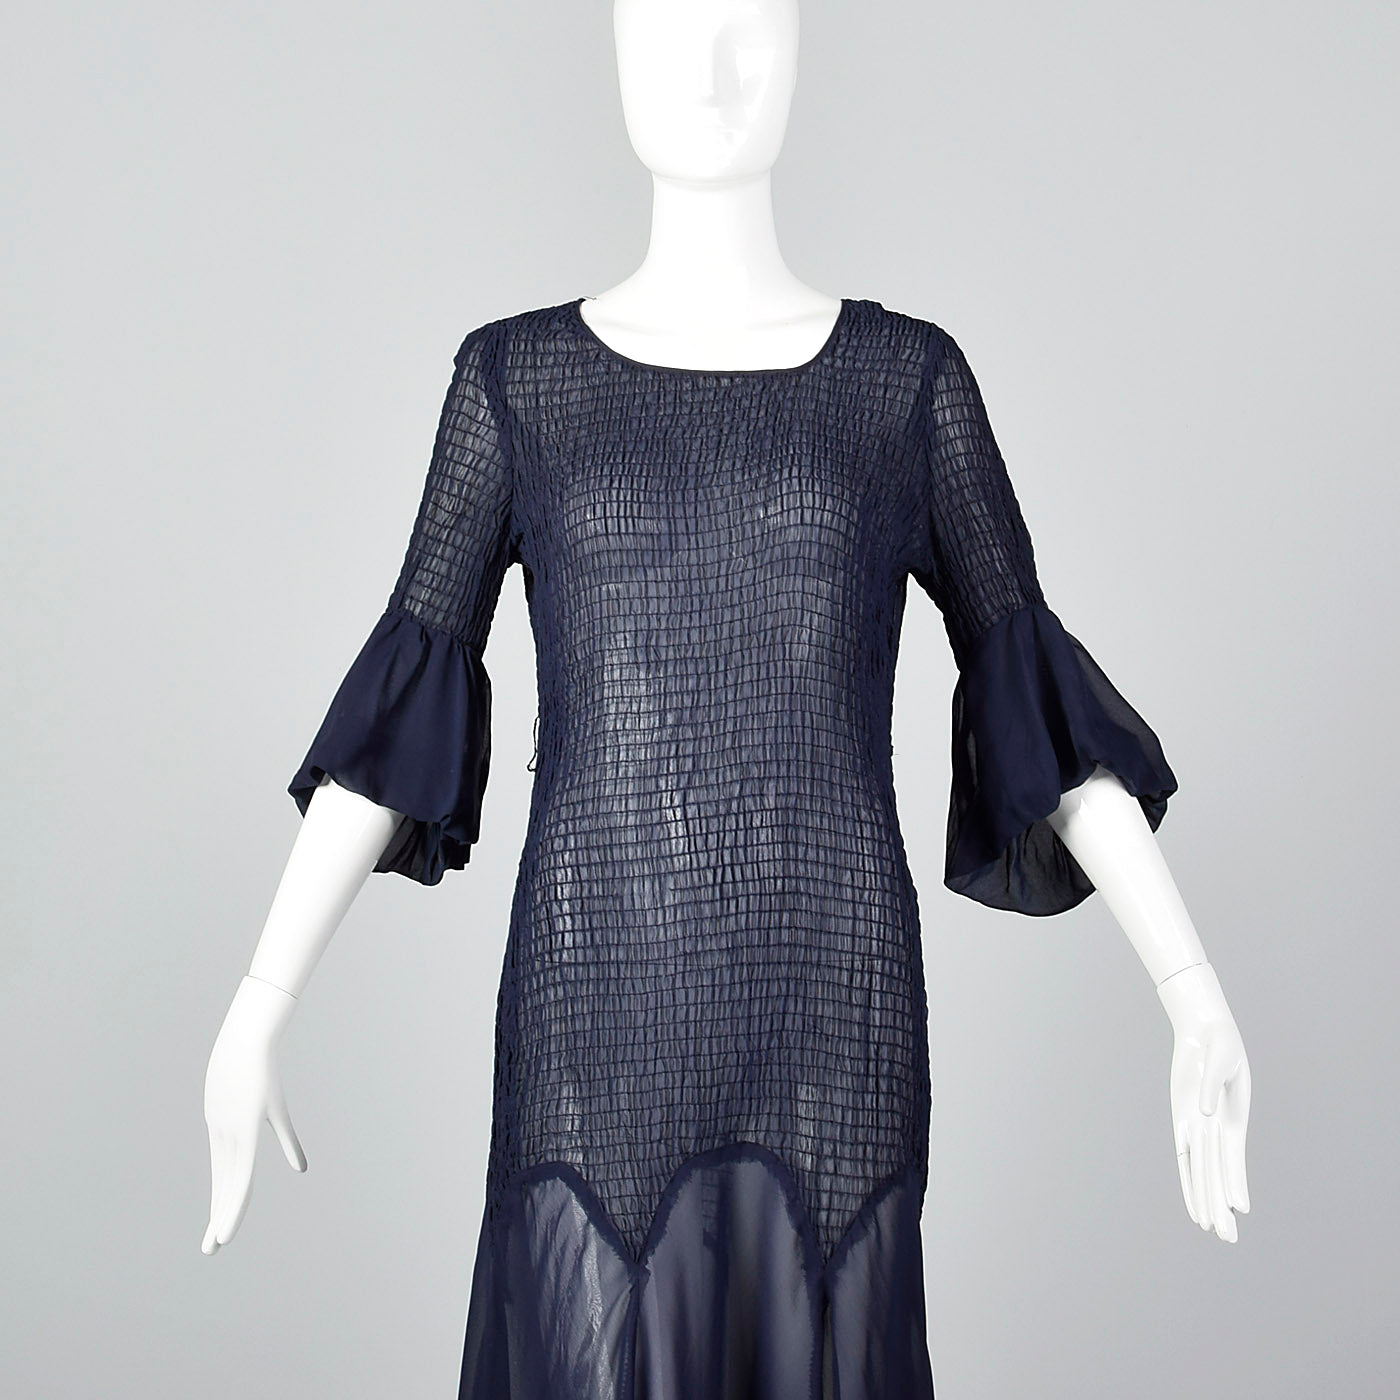 1930s Sheer Navy Blue Dress